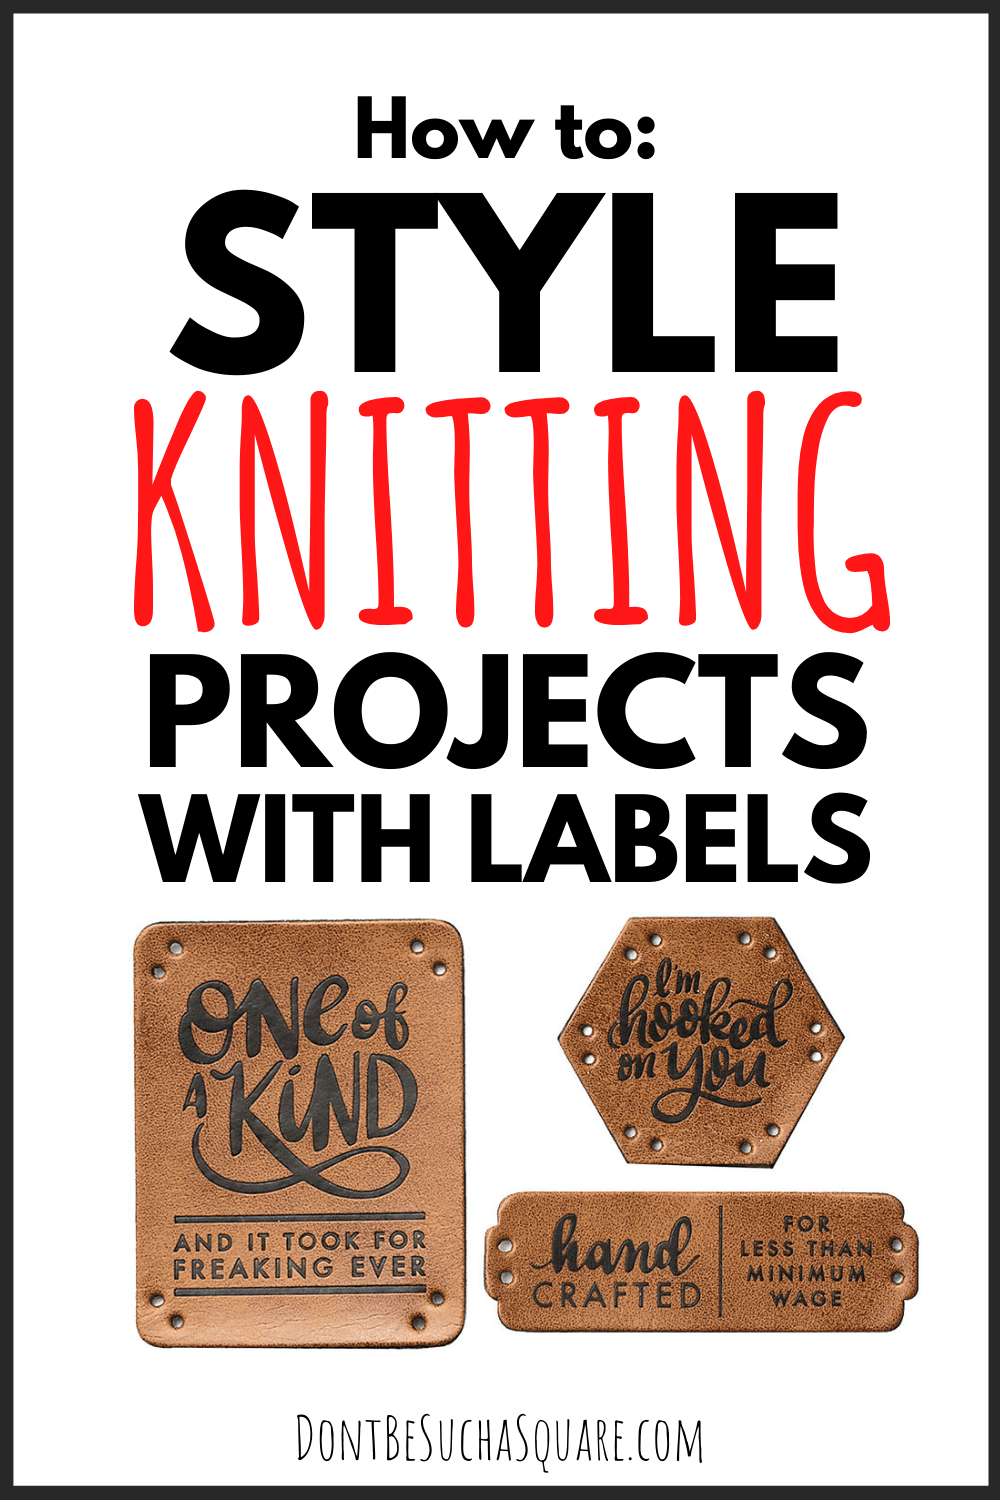 How to style knitting projects with labels